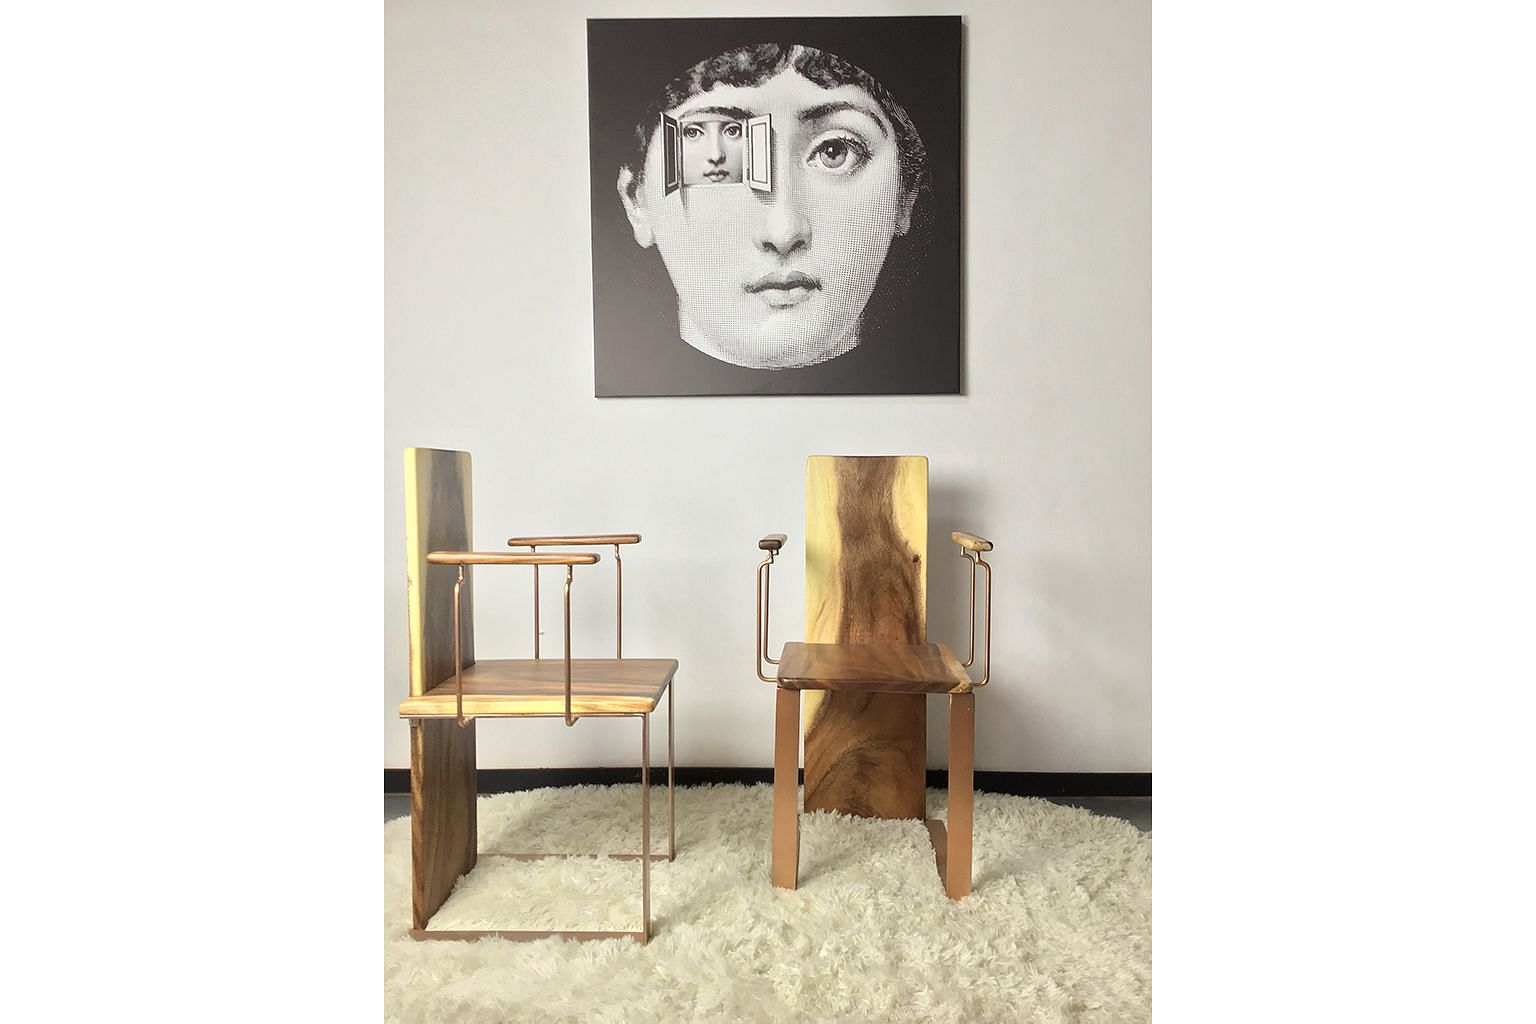 Smoke Signature founder Marcus Wang, whose designs include the Valieri series using suar wood (above), went back to the drawing board during the circuit breaker to sketch a new line of contemporary furniture with slim and lightweight silhouettes.